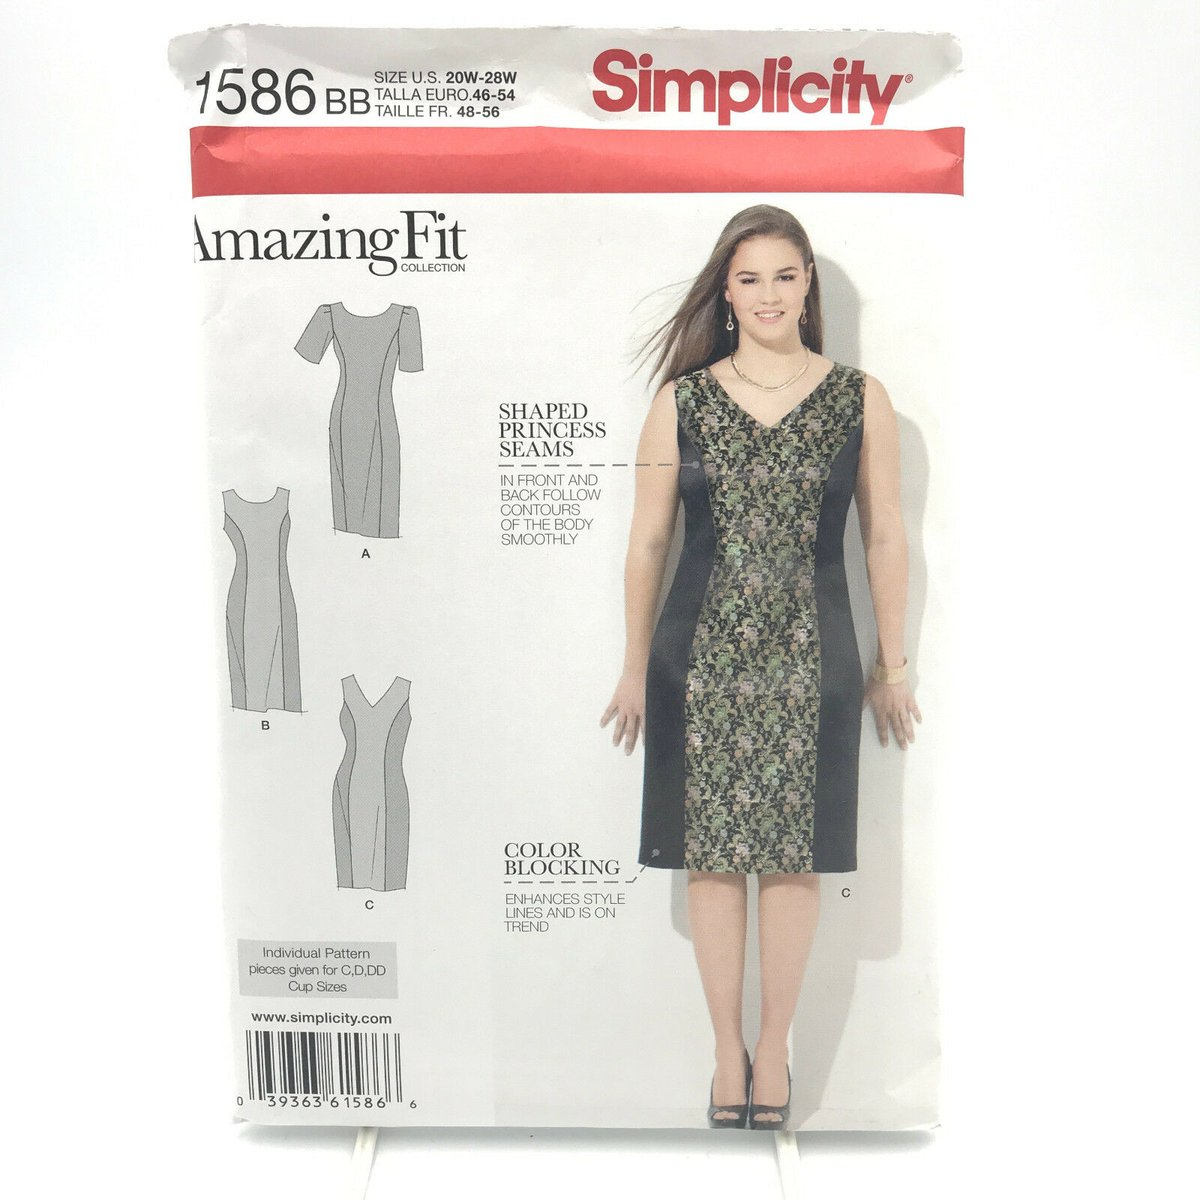 Every woman needs a straight, simple dress in their closet. Or maybe 2. Or 3? Or 4... I'll stop while I'm still ahead. #straight #dress #bodycon #colorblocking #princessseams #vneck #roundneck #modest #plussize #womens #ladies #misses #sewingpattern #ebay https://ebay.to/2vPB2wTpic.twitter.com/IvCCPqKOrf